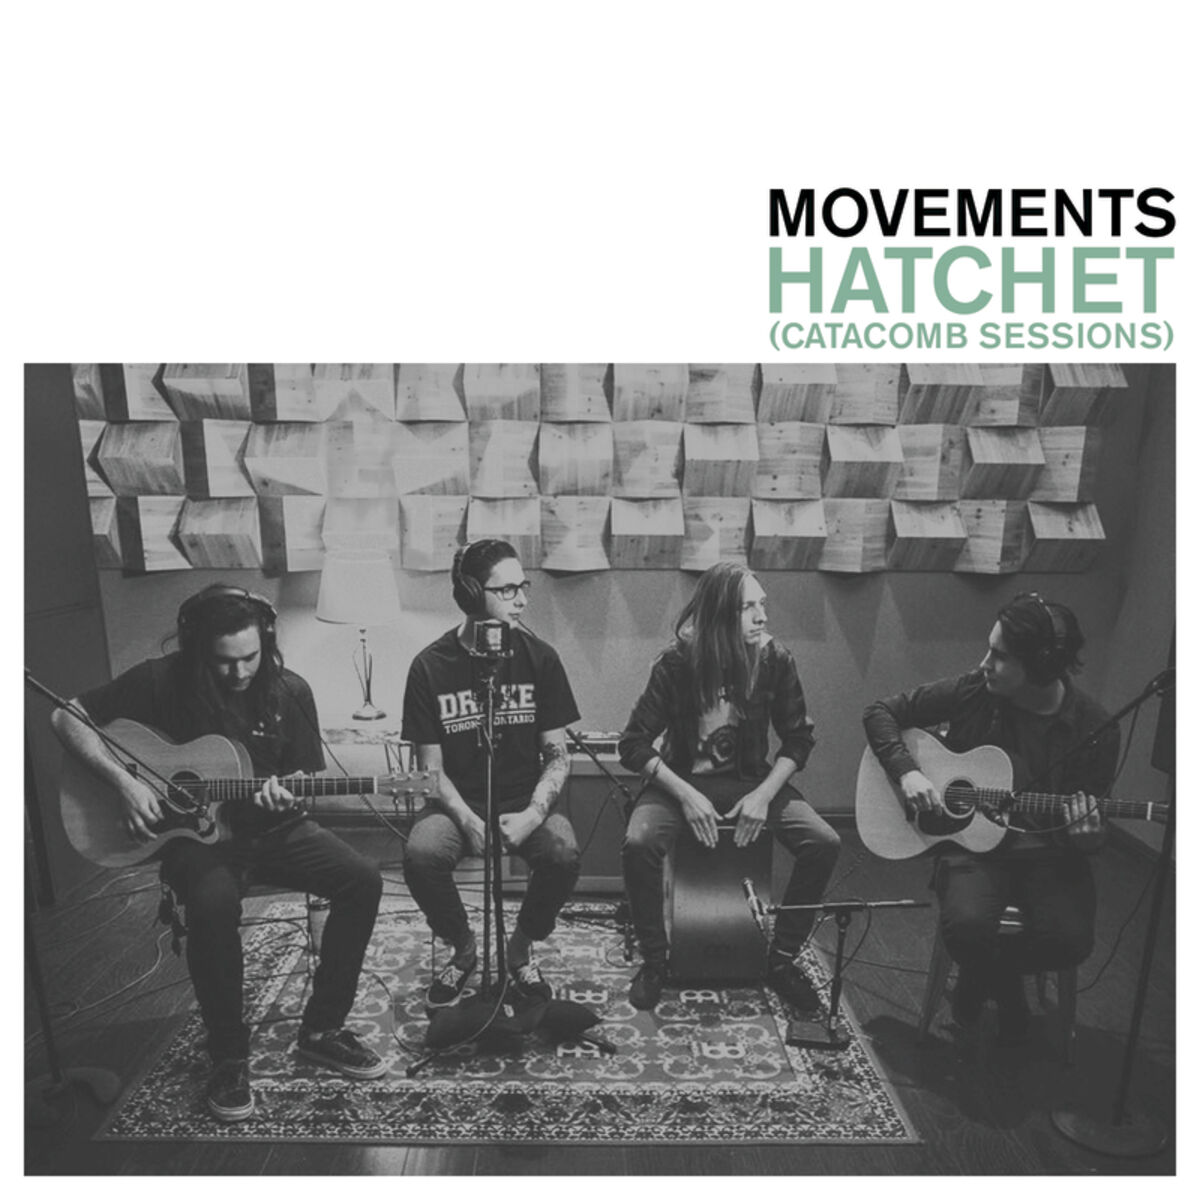 Movements - Hatchet (Catacomb Sessions) [single] (2016)